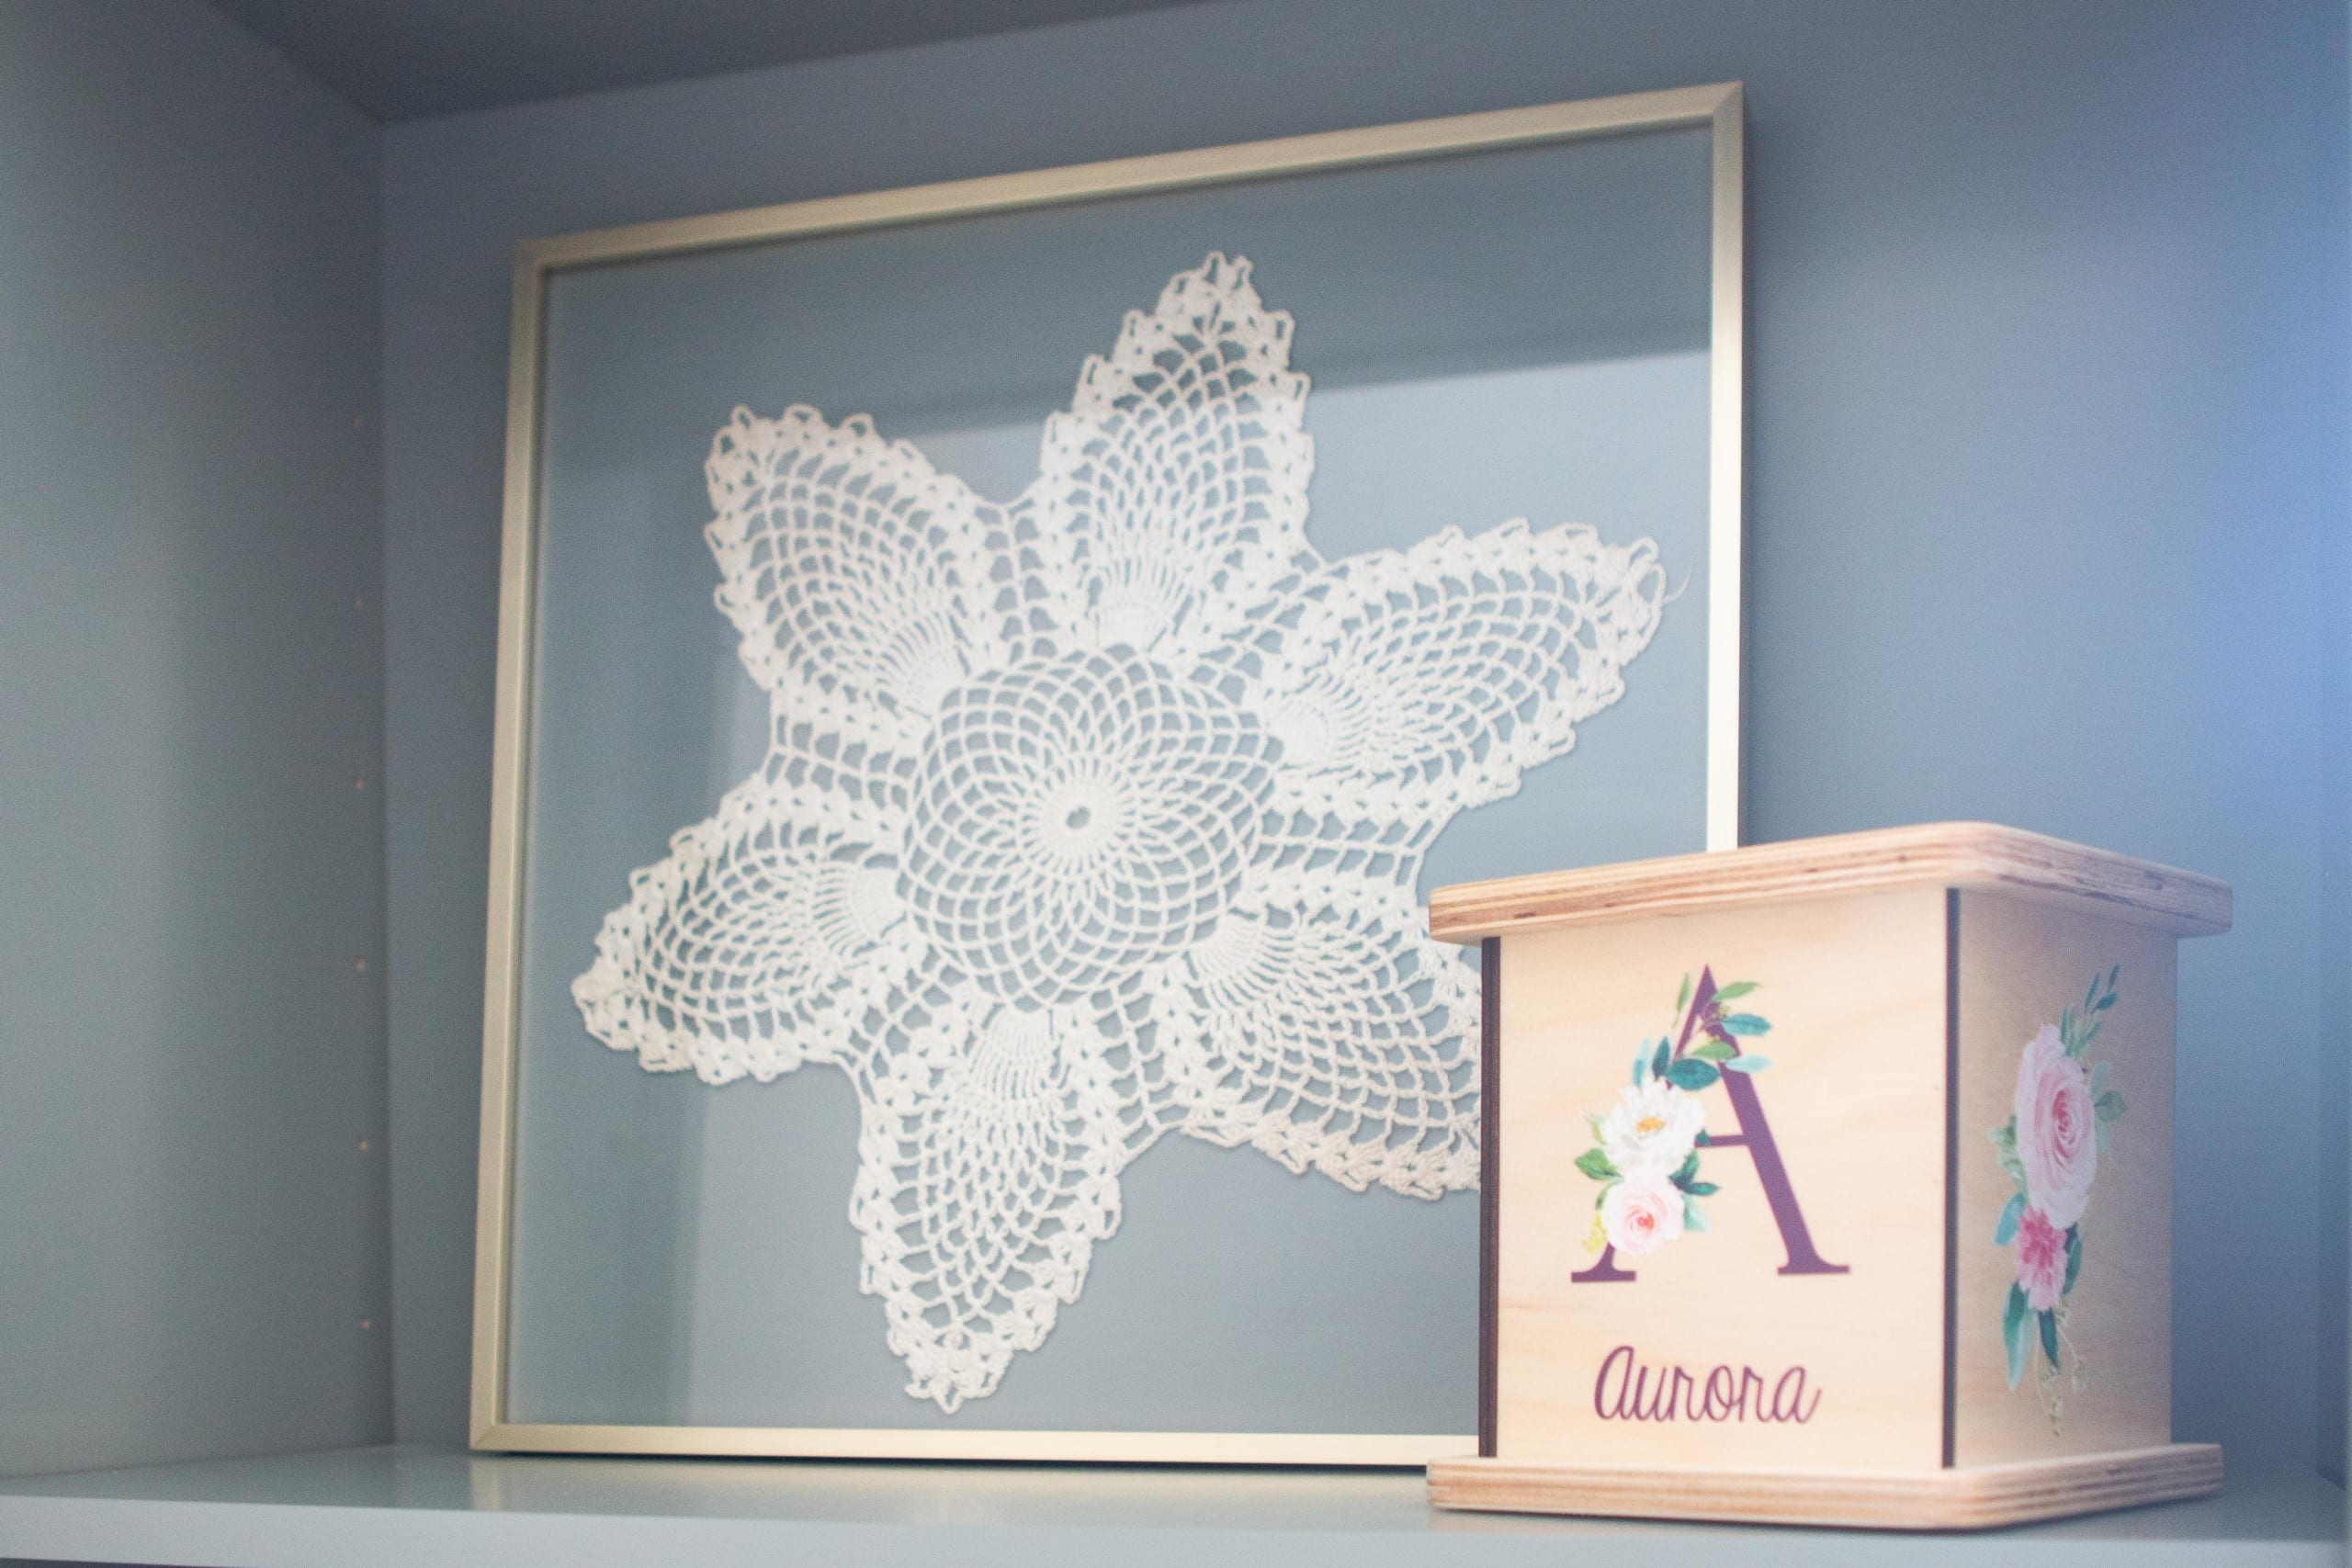 Rory's special snowflake art in her nursery